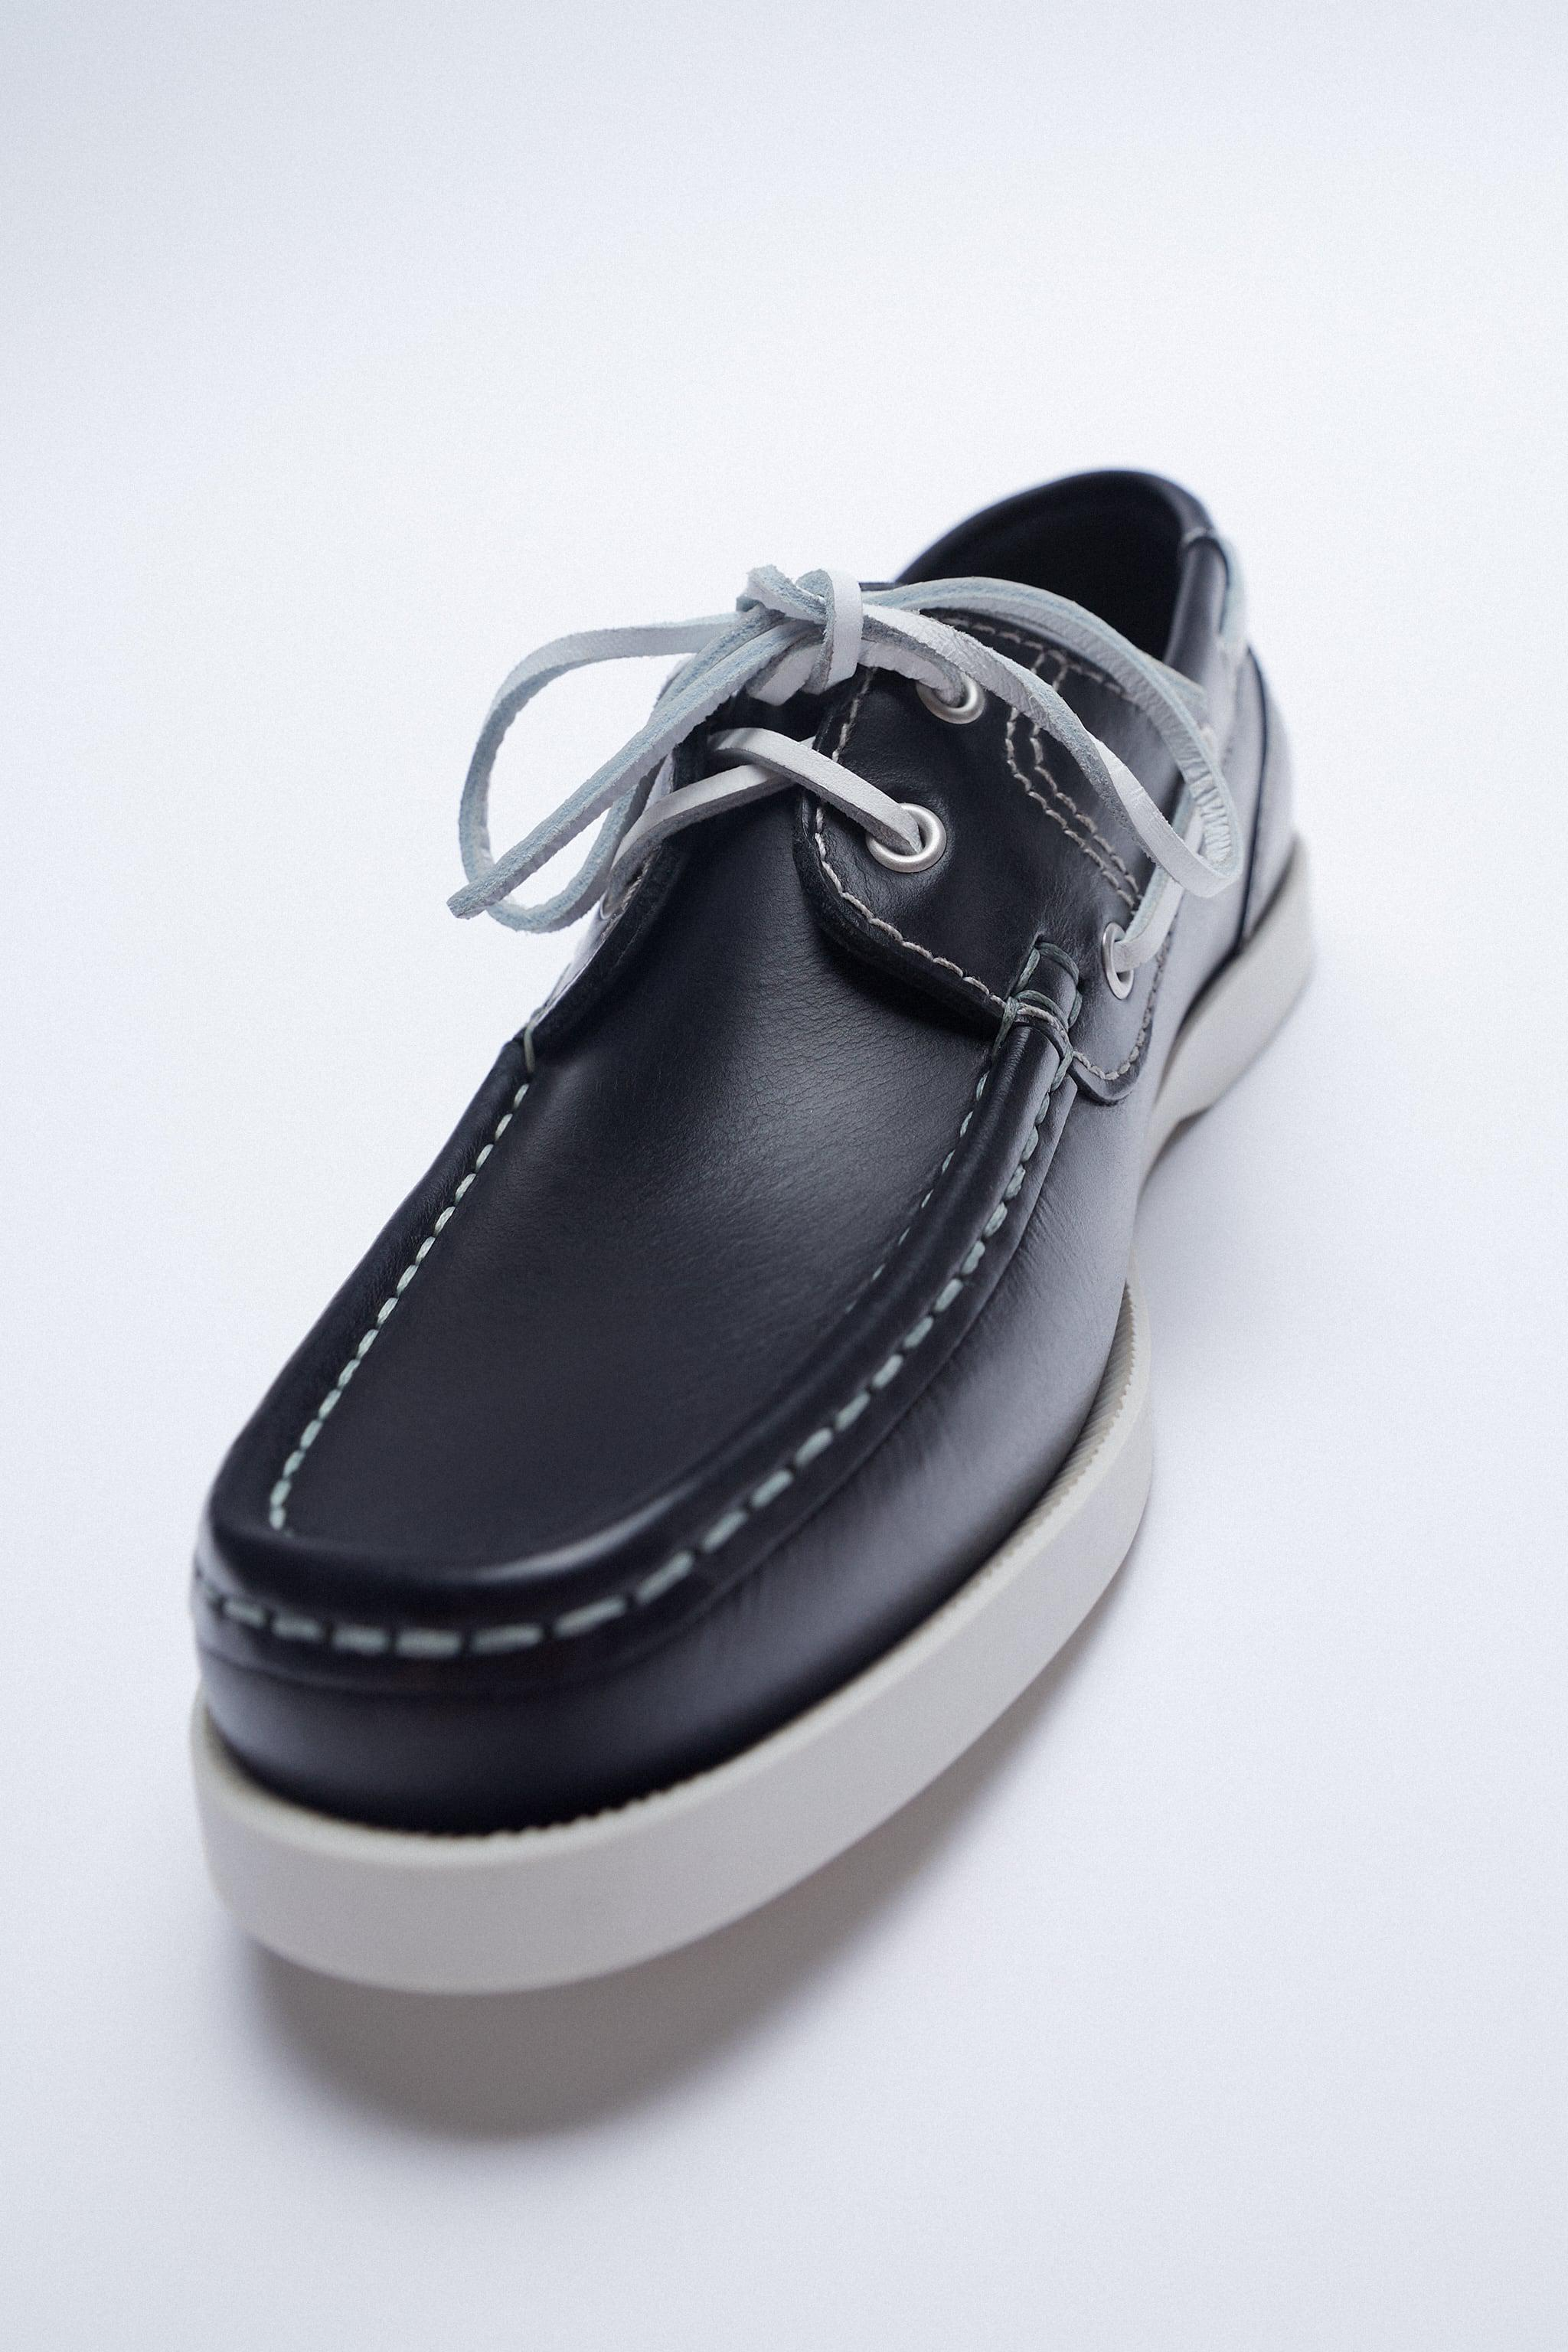 LOW HEEL LEATHER BOAT SHOES 4